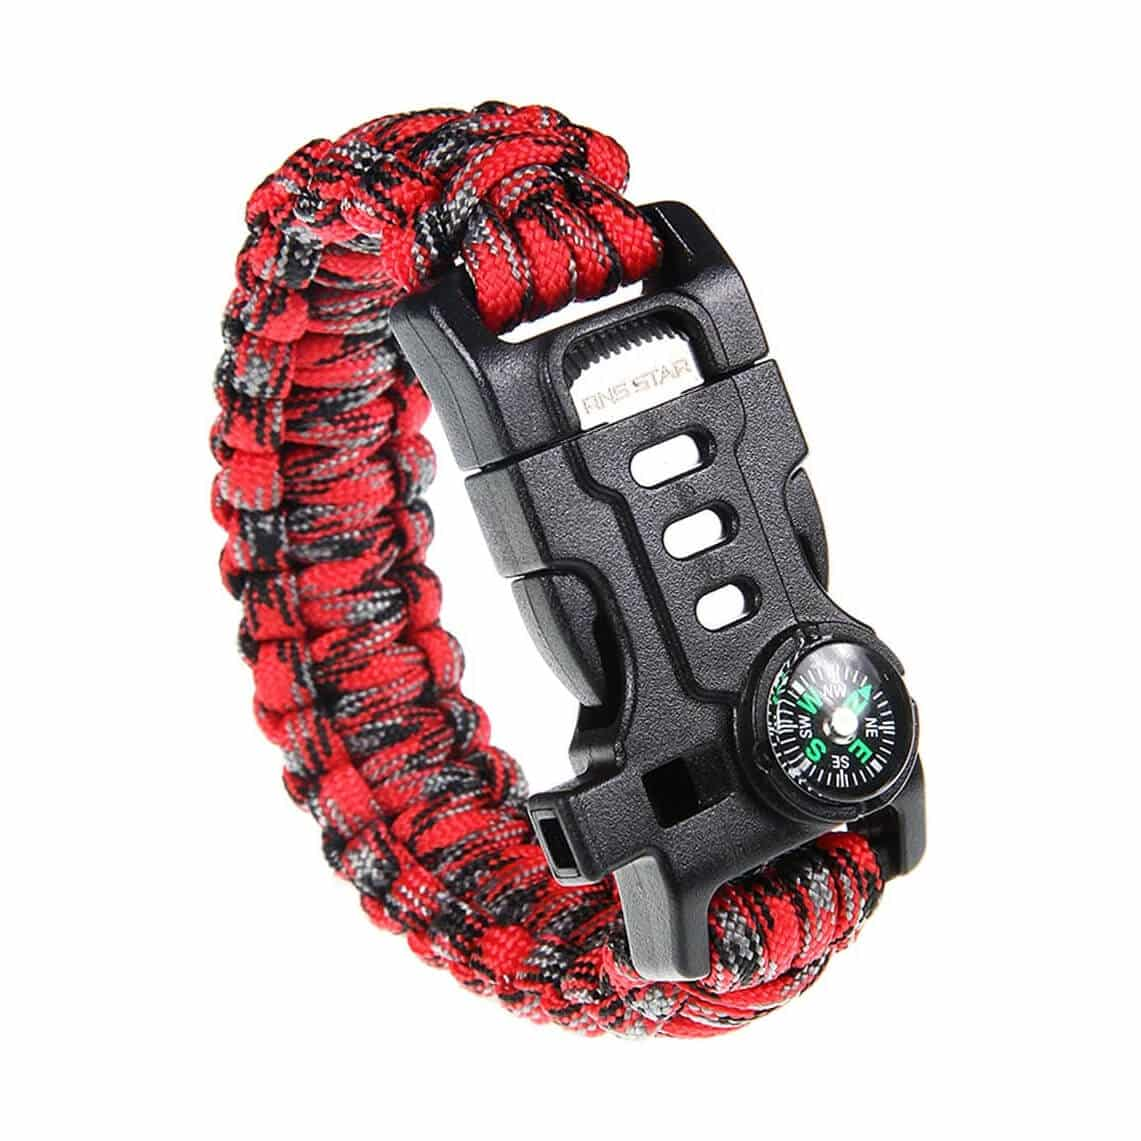 RNS STAR Paracord Survival Bracelet with Paracord Rope